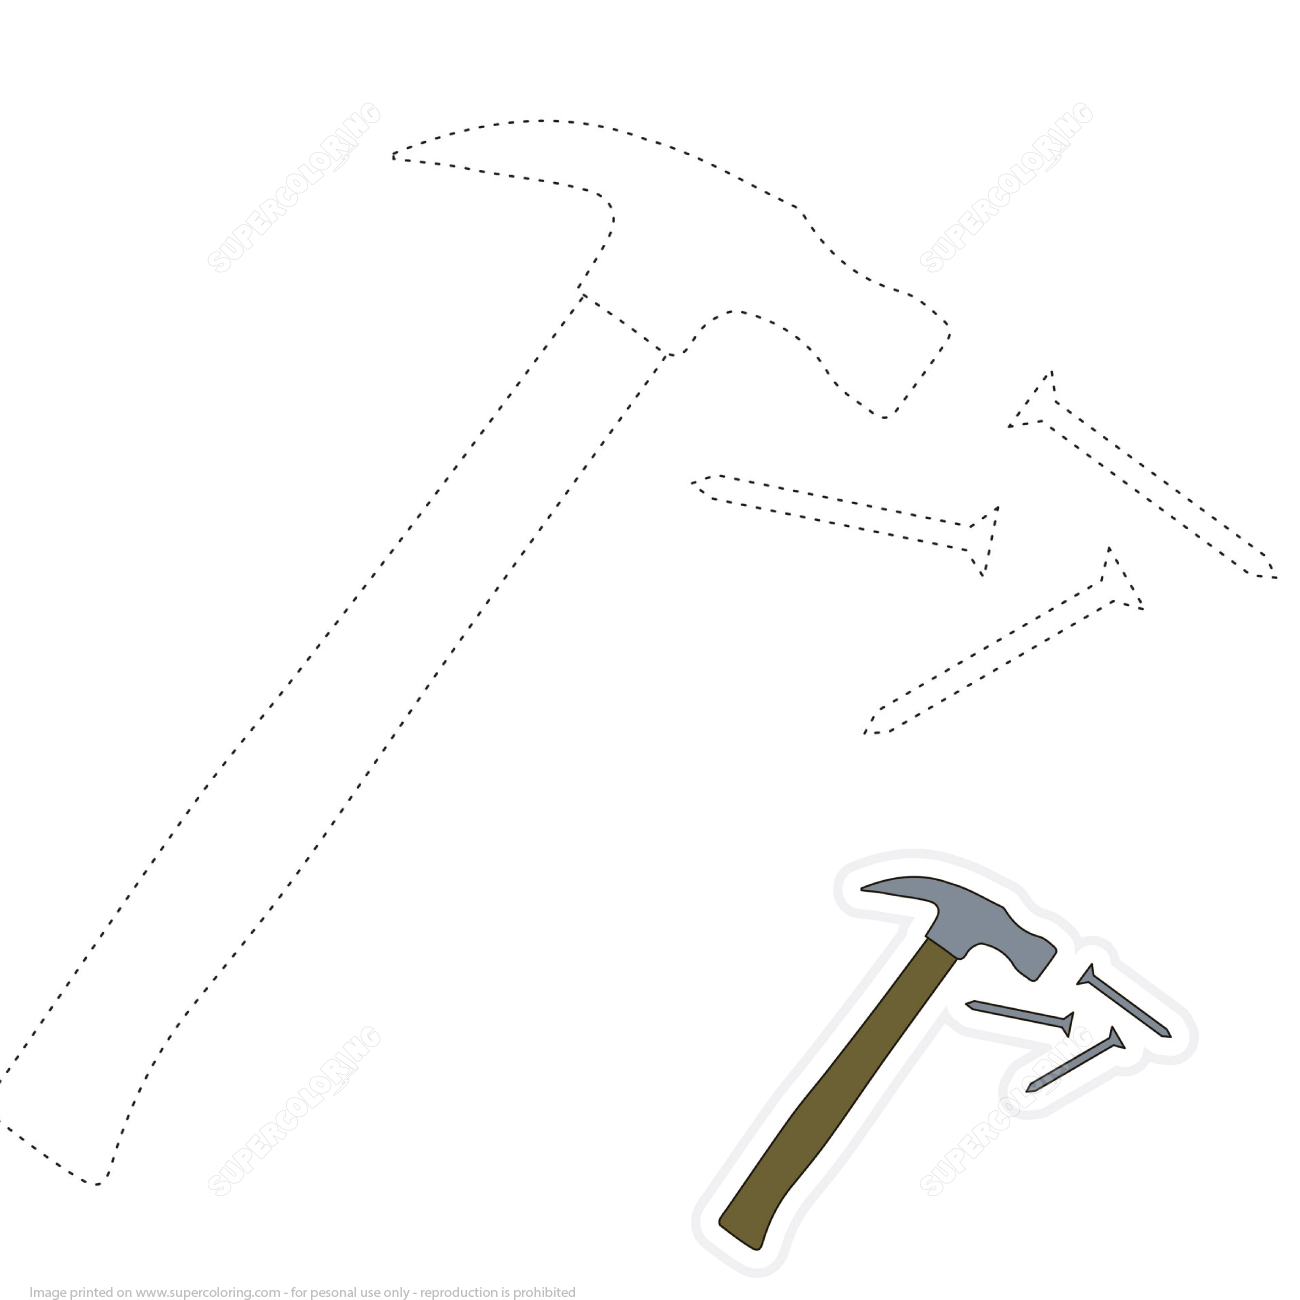 Draw Hammer And Nails By Tracing Dashed Lines And Color